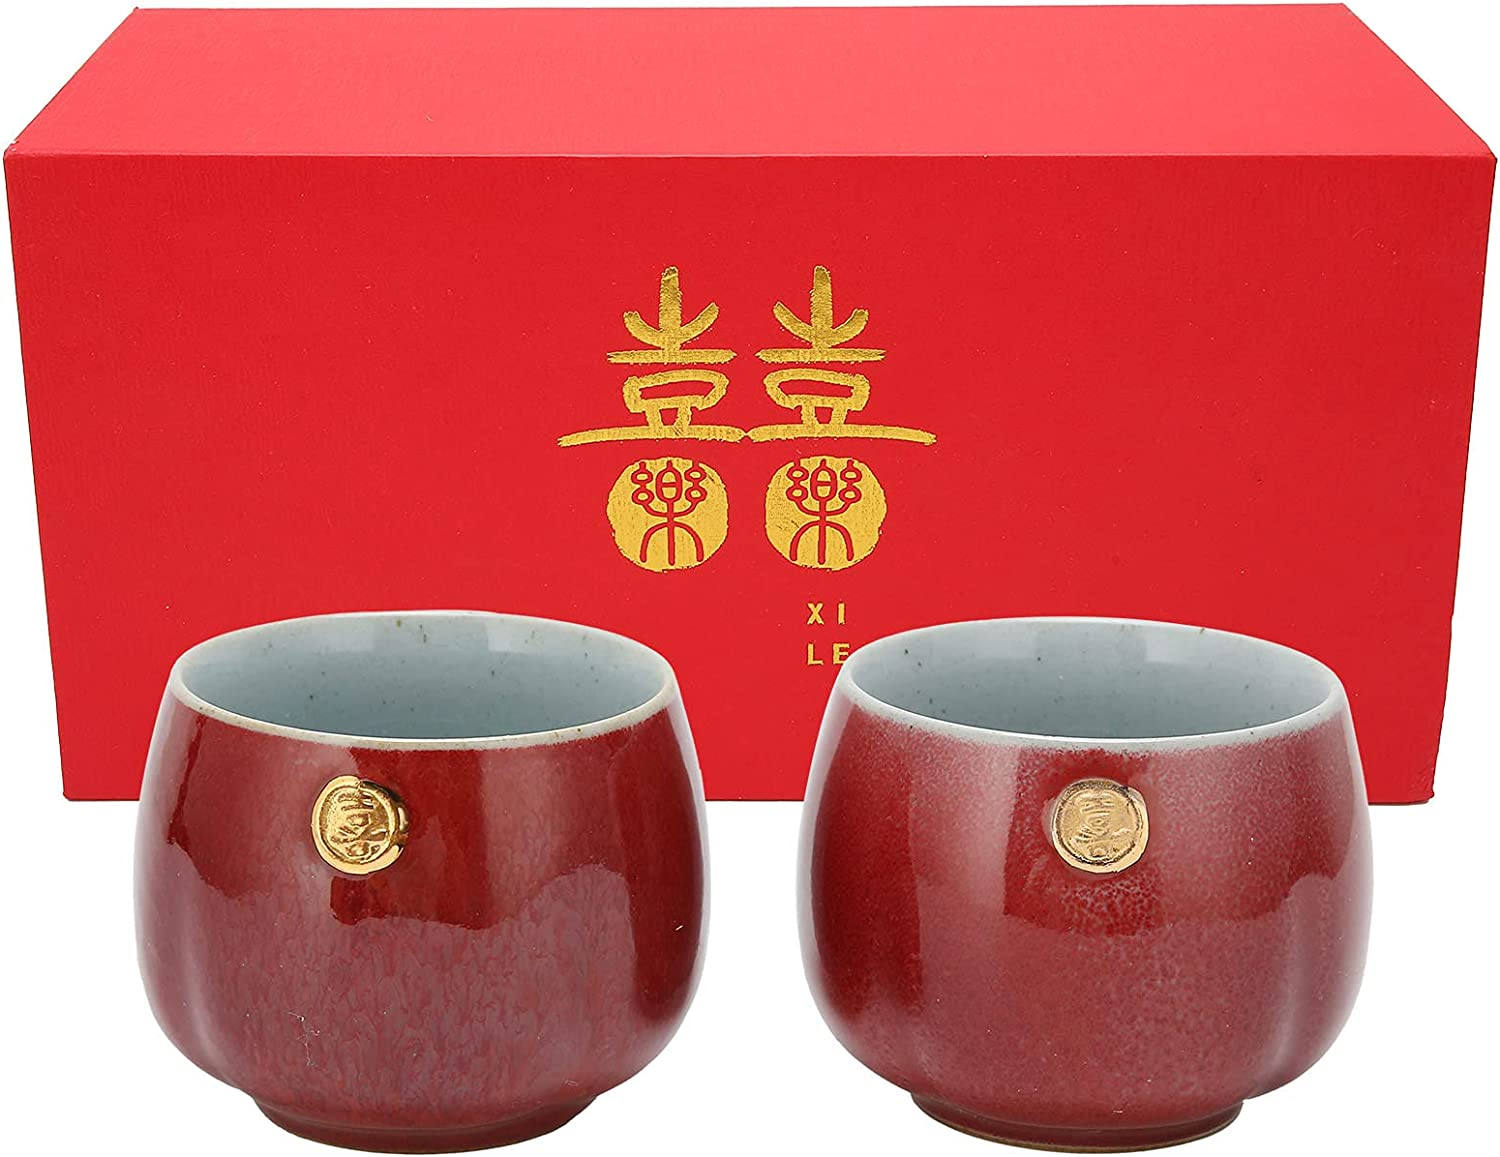 RUIRUIY Teacup Austin Mall Ceramic Cup Gift Style Chinese Tea 2Pcs Kung Selling